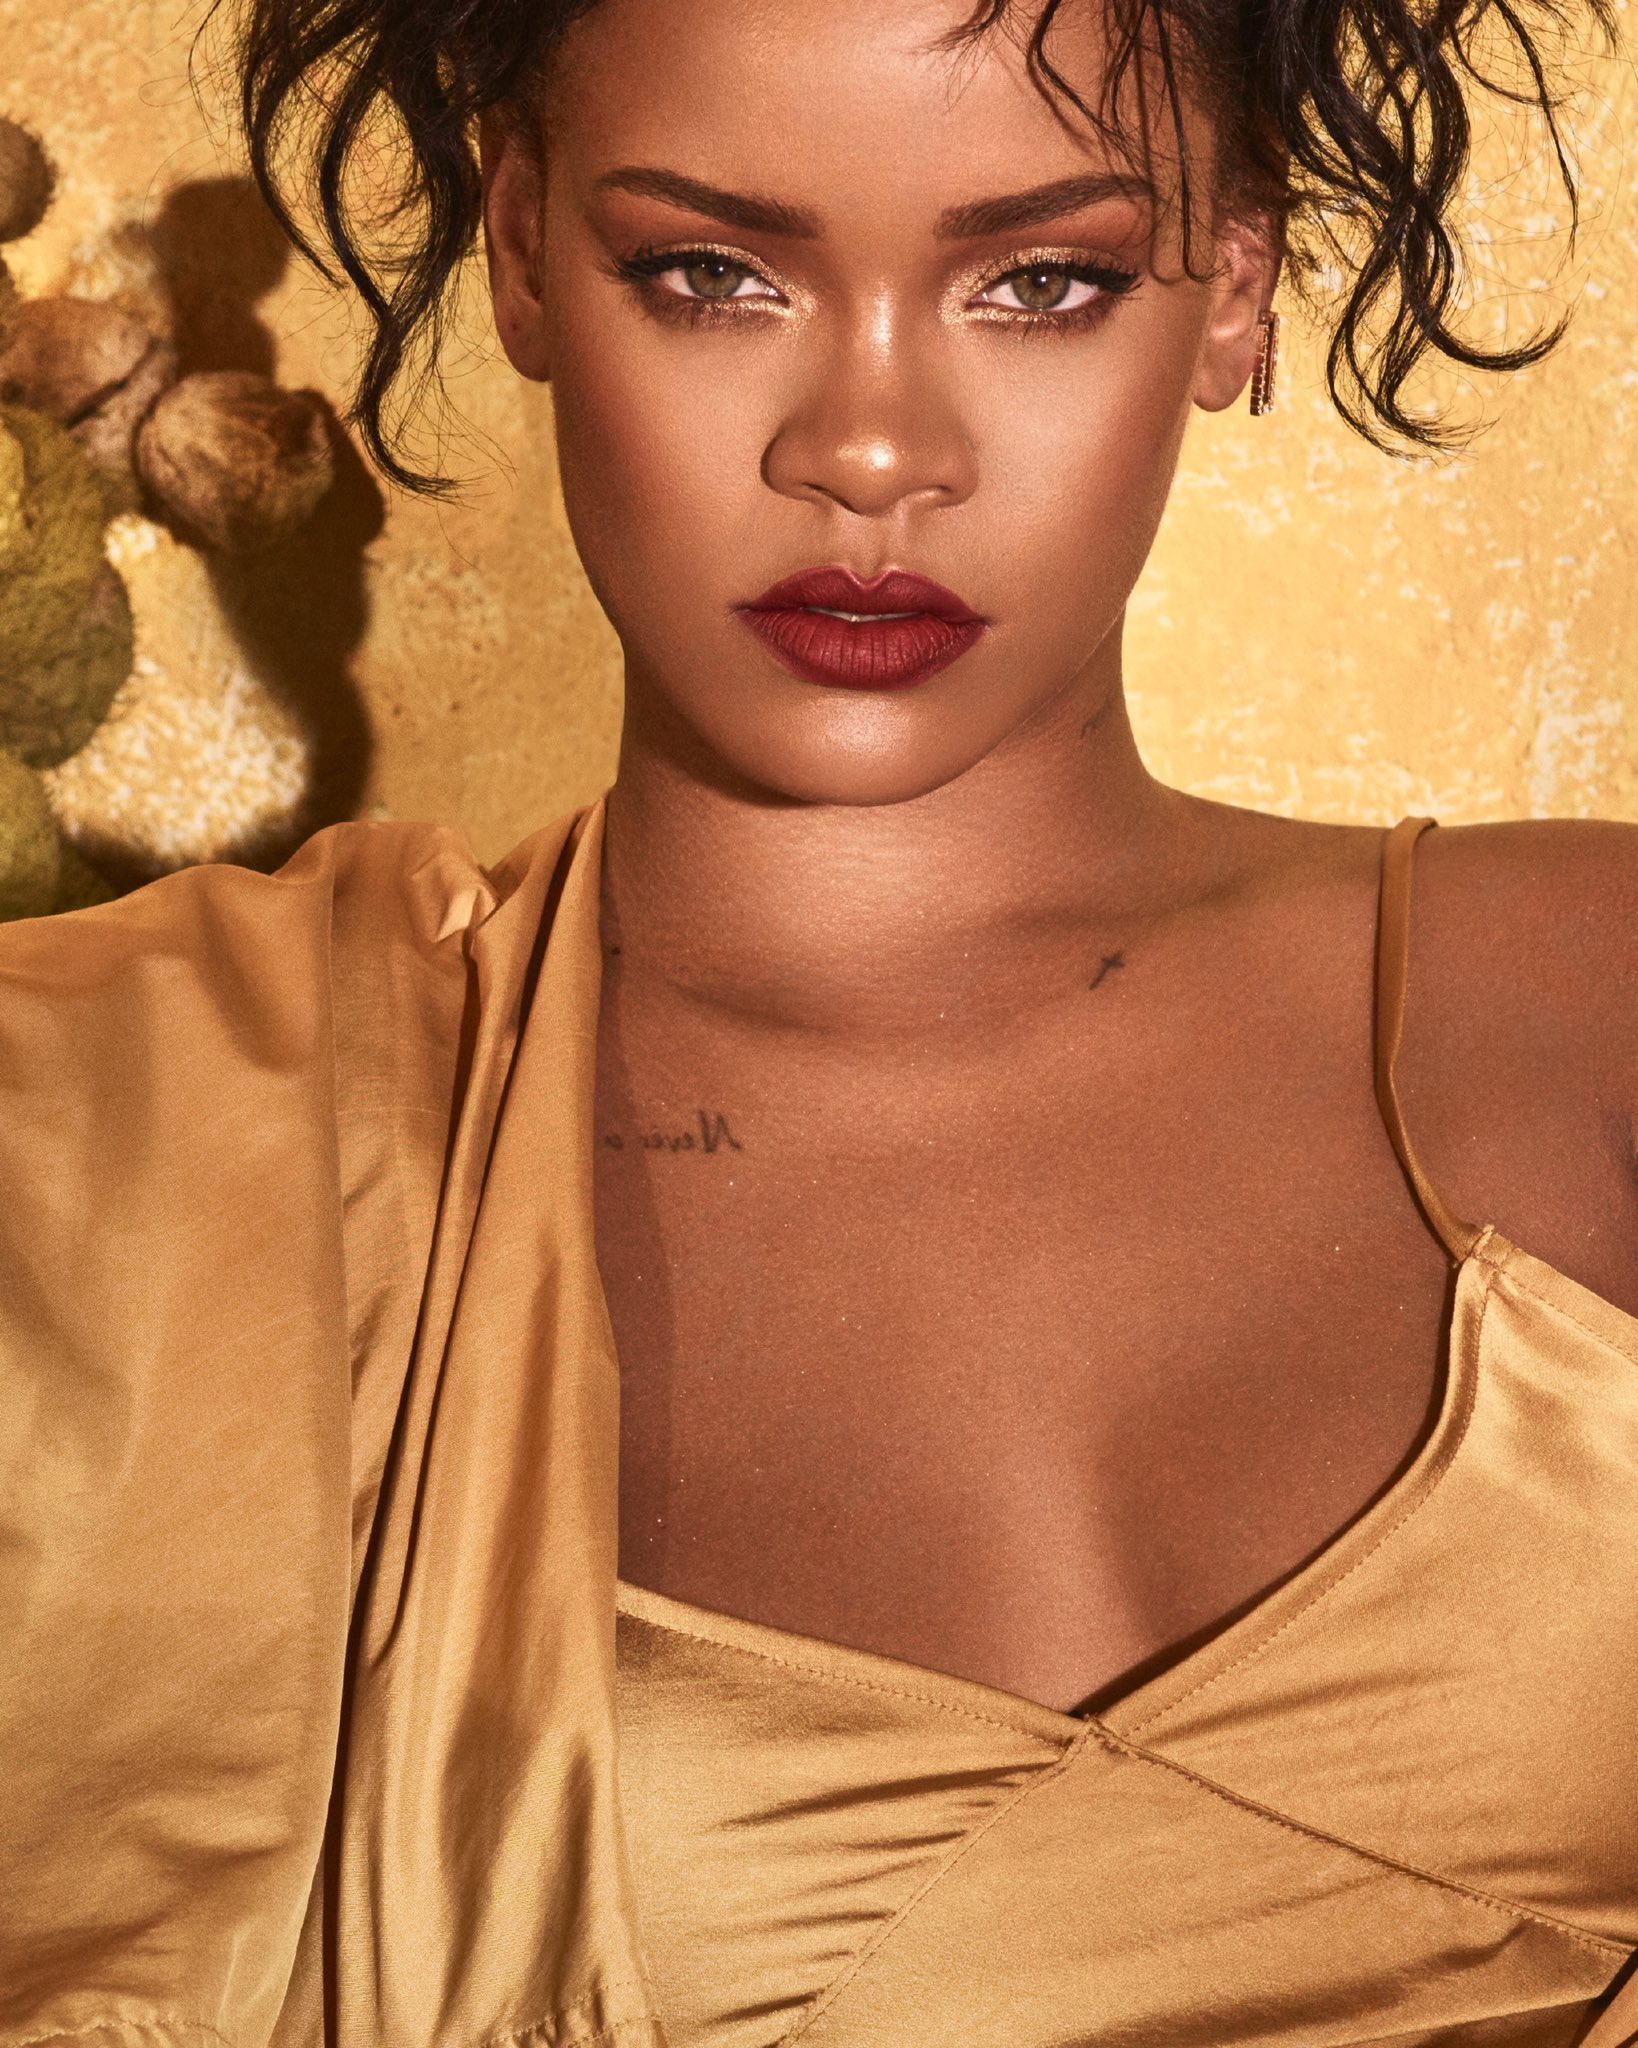 rihanna-fenty-beauty-spice-makeup.jpg